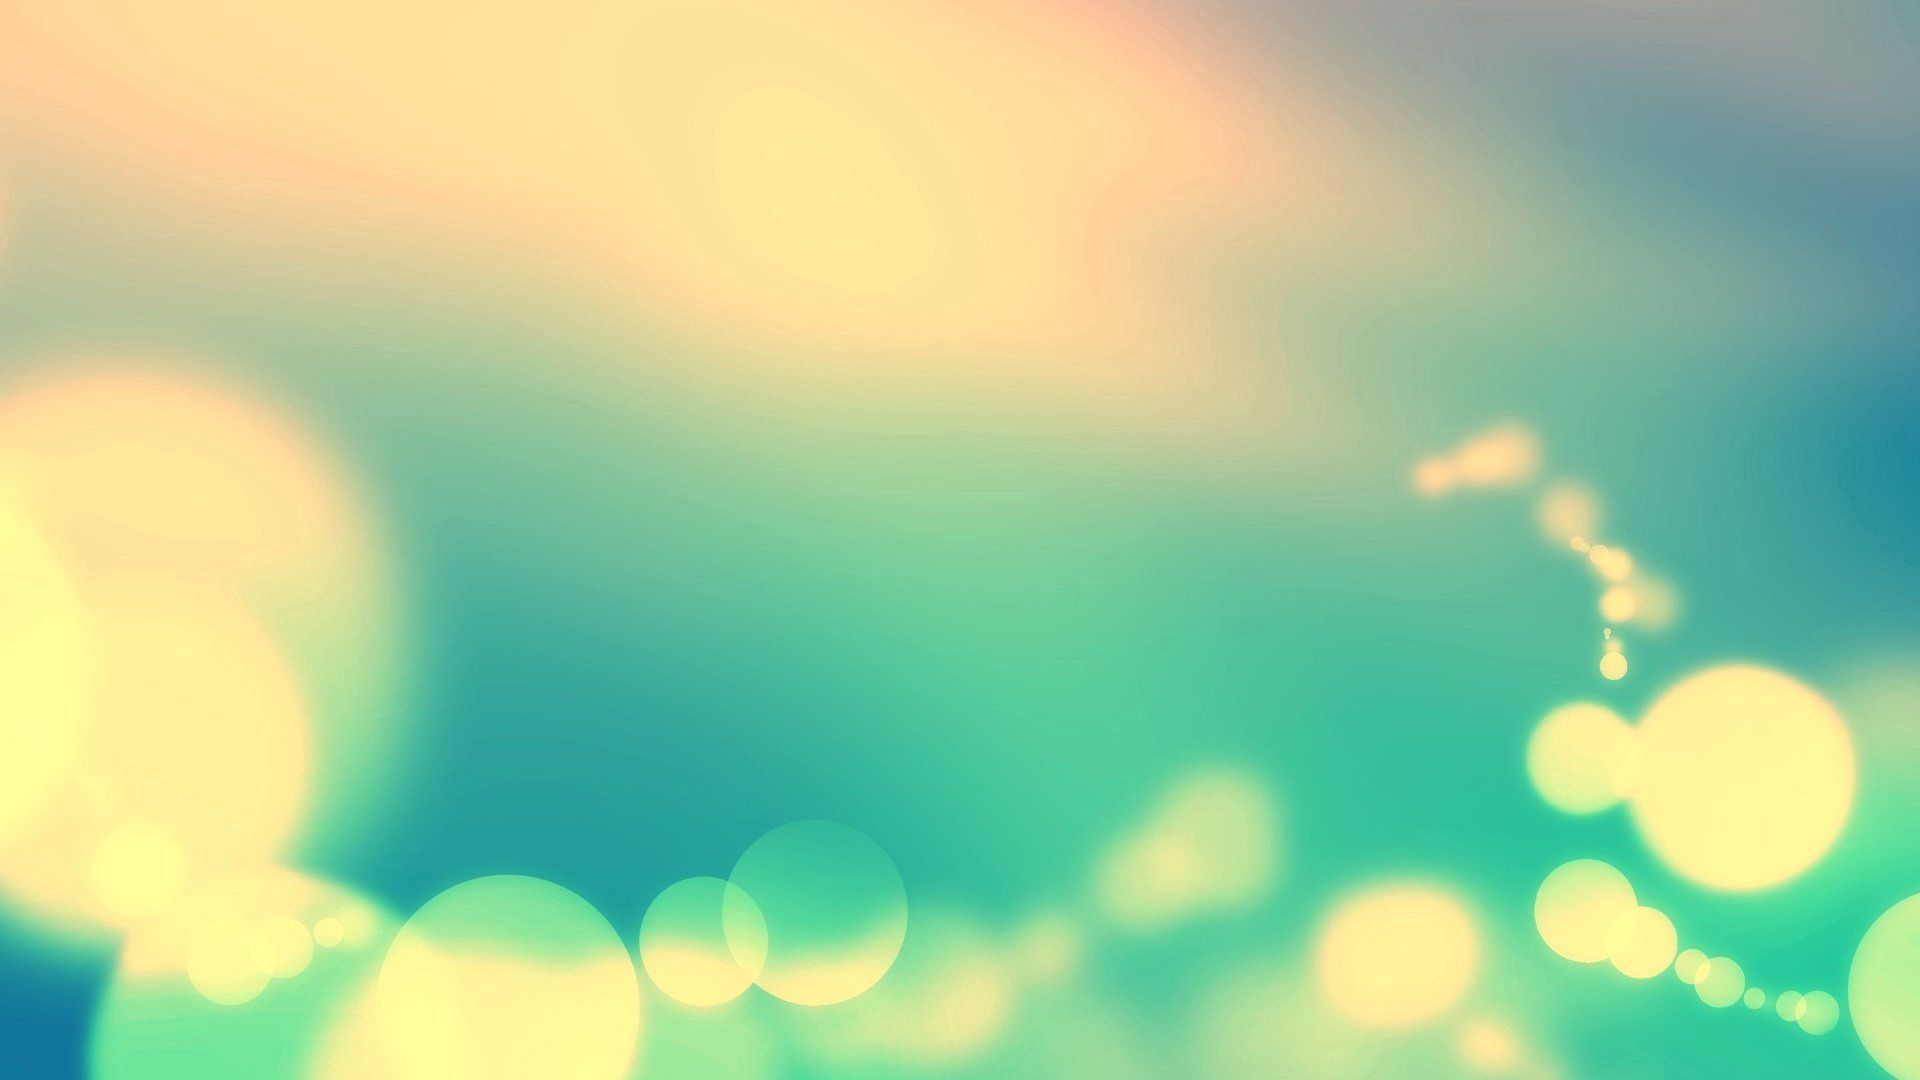 91350 download wallpaper Abstract, Stains, Spots, Background, Light Coloured, Light, Glare, Circles screensavers and pictures for free